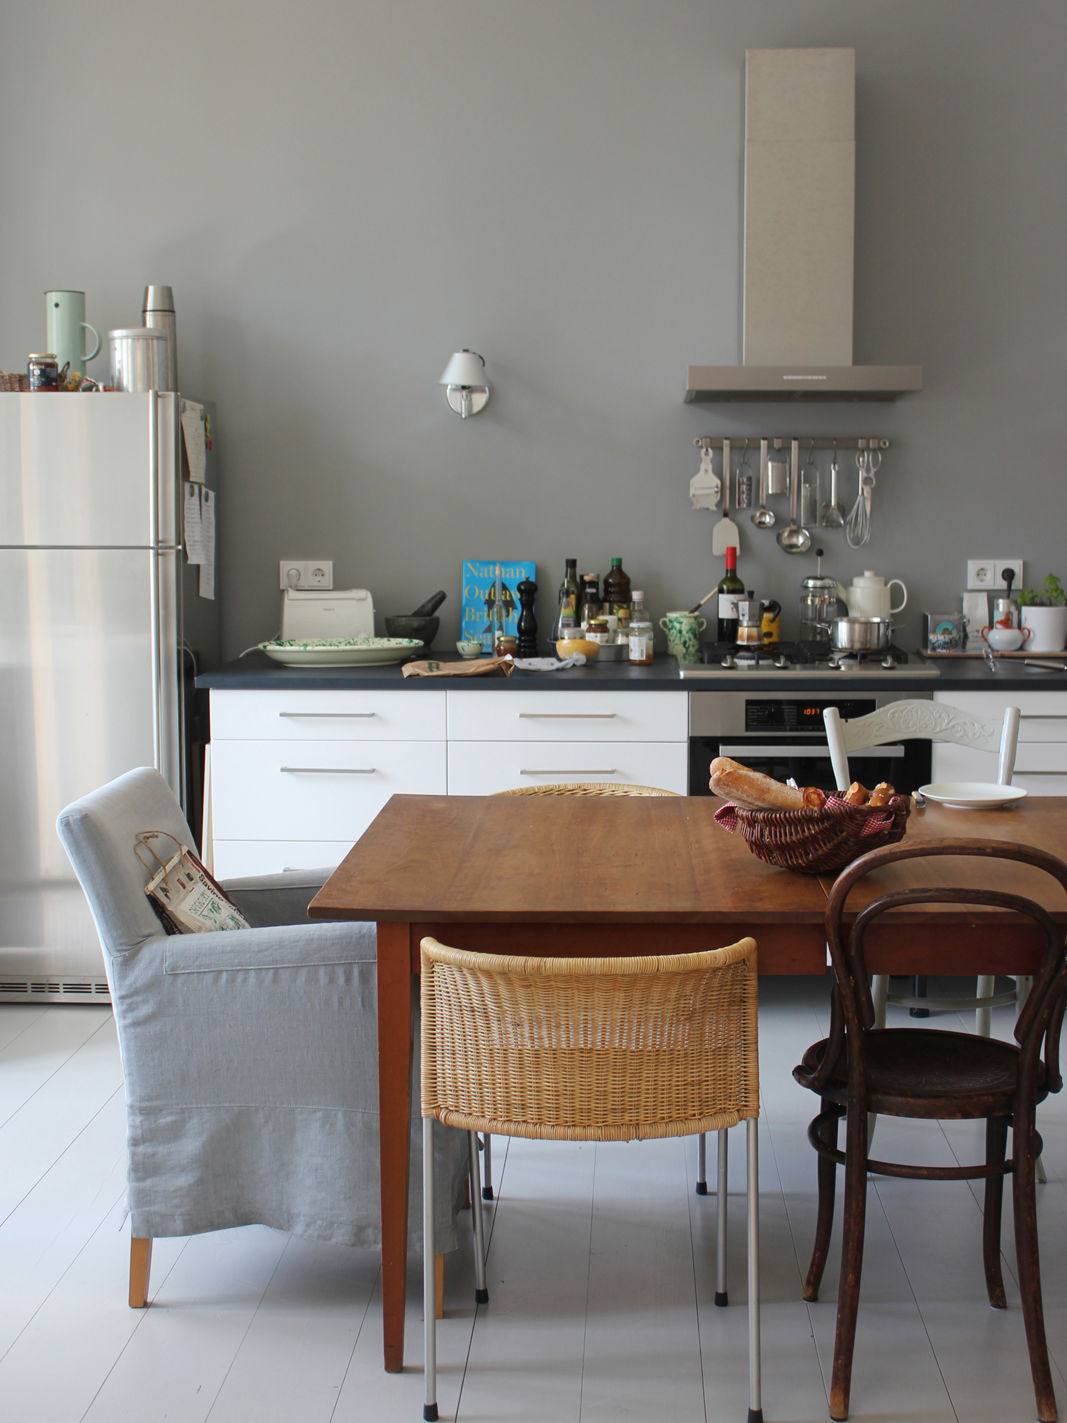 Houzz Küche Altbau An Art Historian Home Anneliwest Berlin